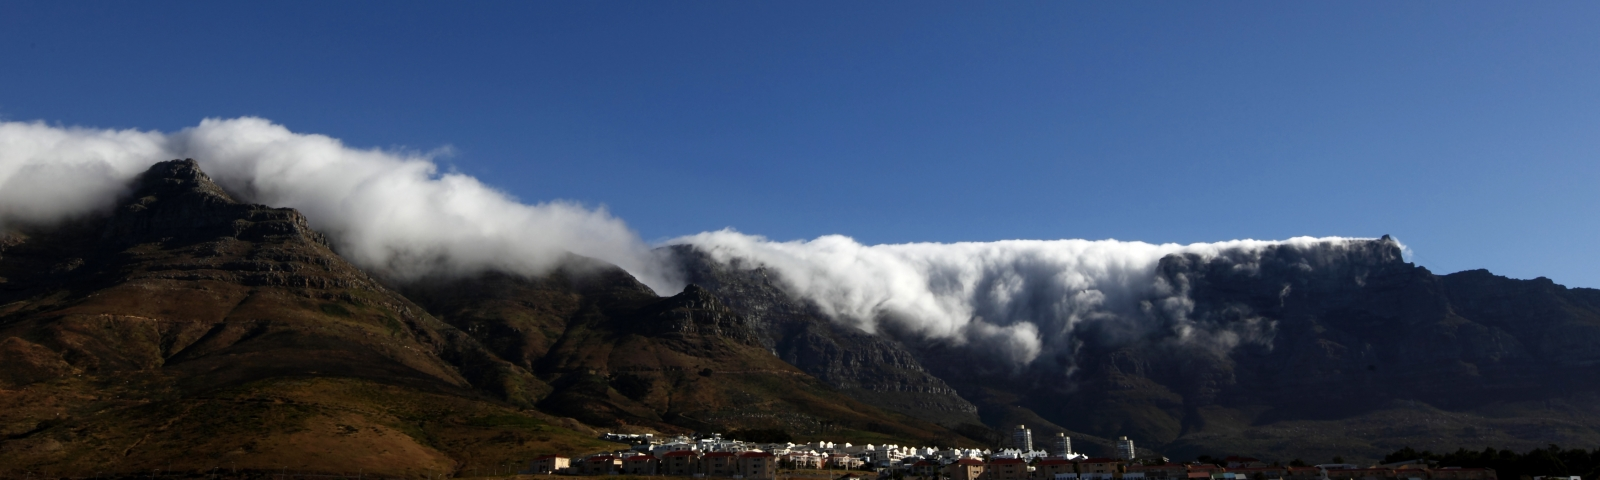 Clouds roll over Table Mountain outside Cape Town